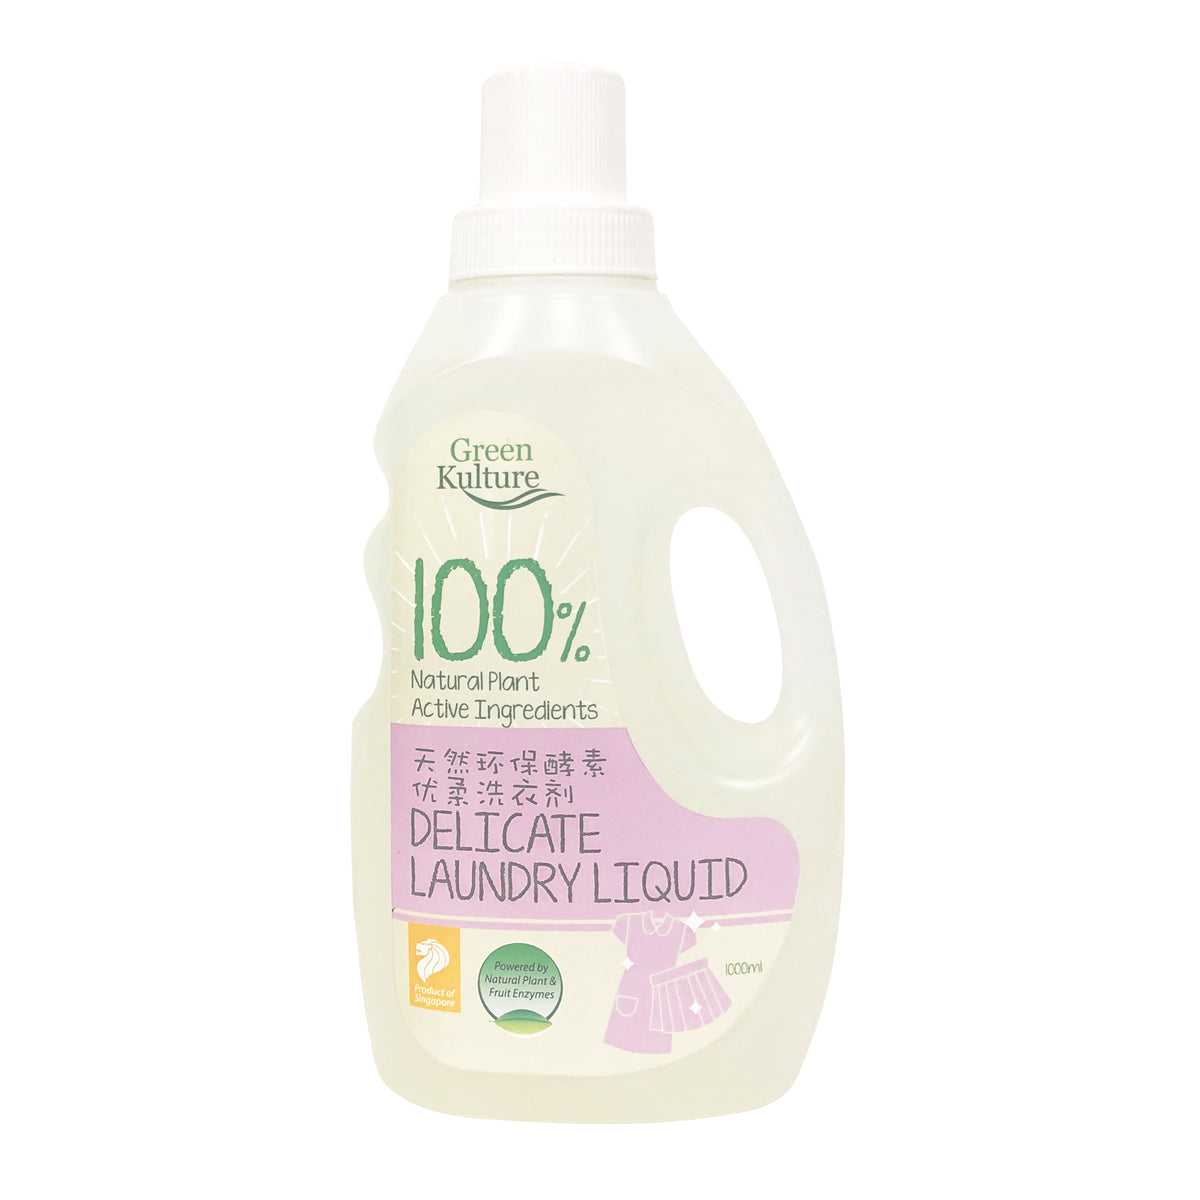 Delicate Laundry Liquid (1000ml)